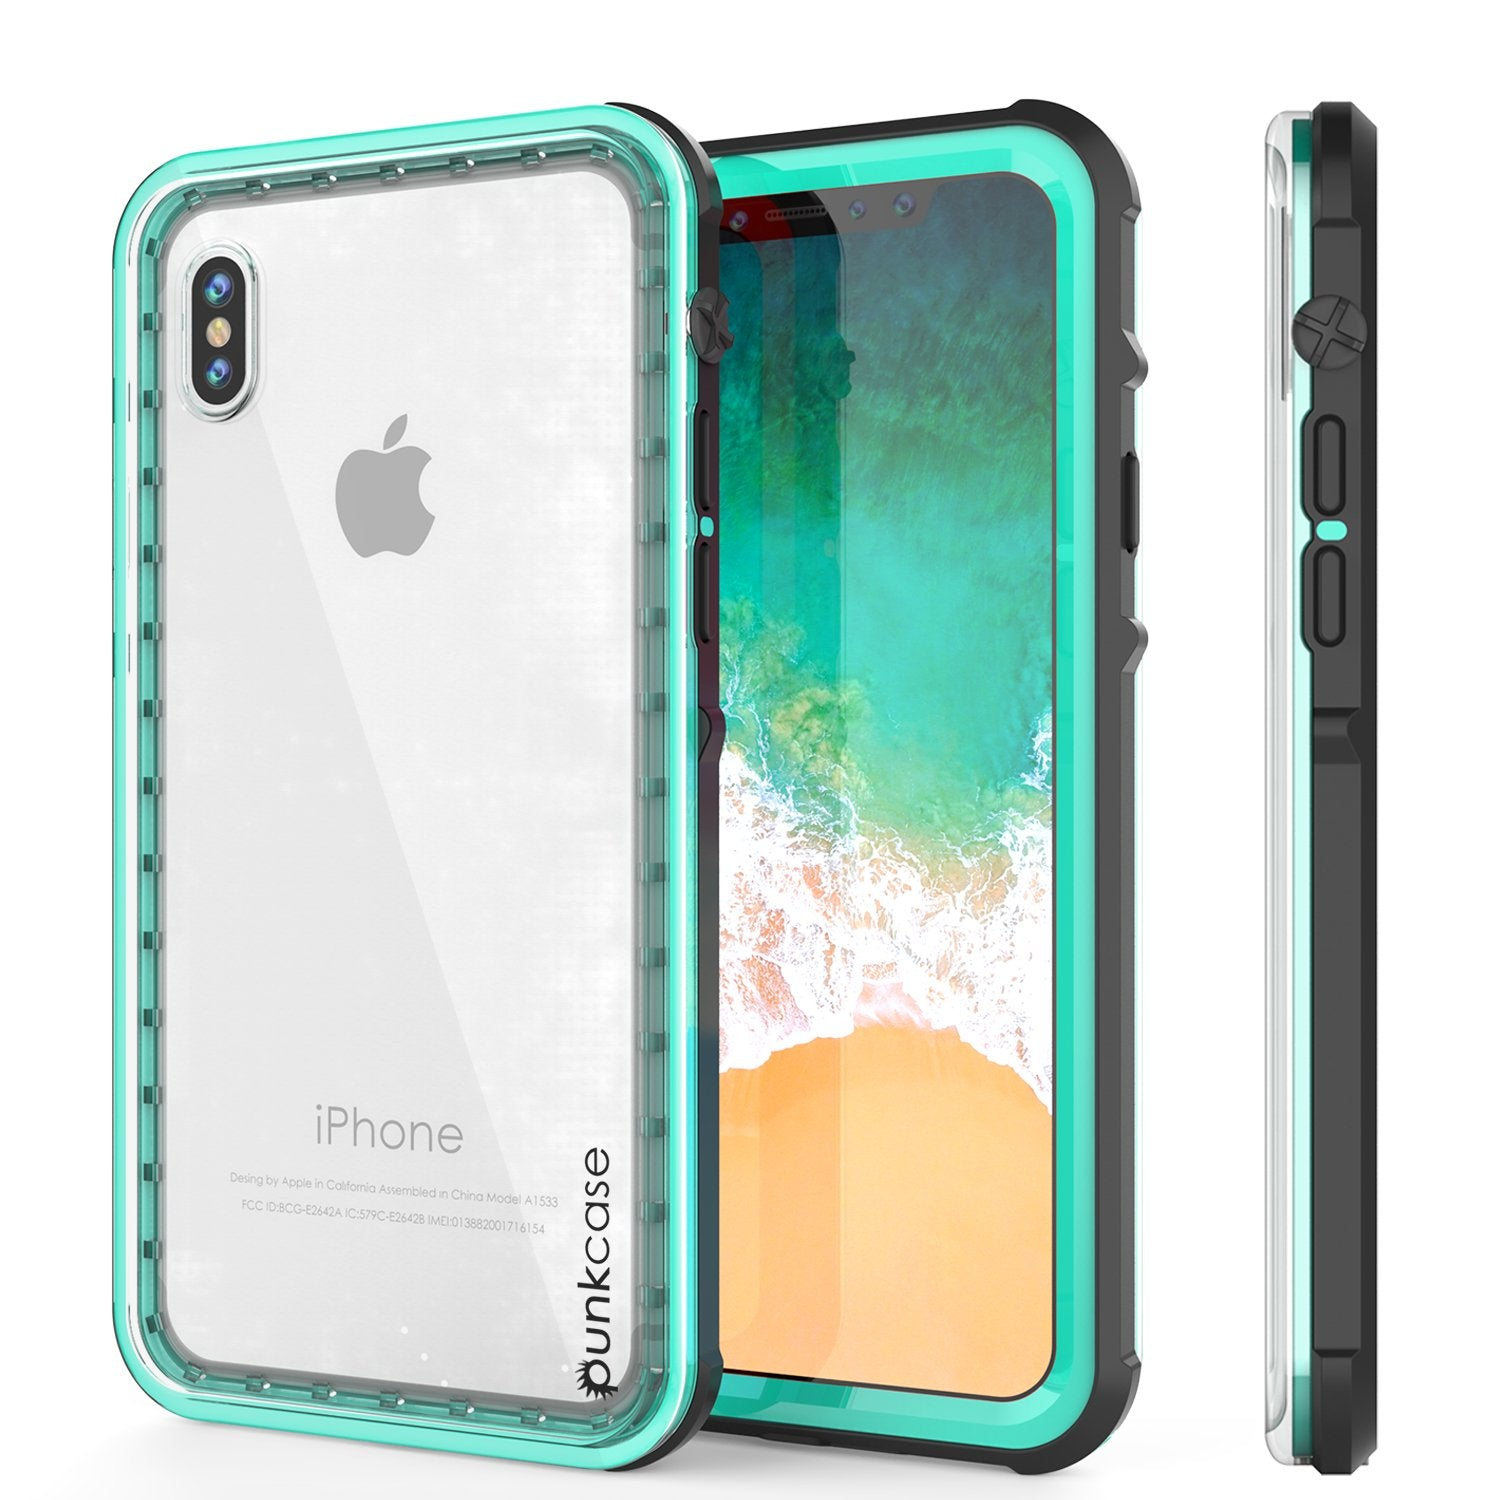 iPhone XS Case, PUNKCase [CRYSTAL SERIES] Protective IP68 Certified, Ultra Slim Fit [TEAL]